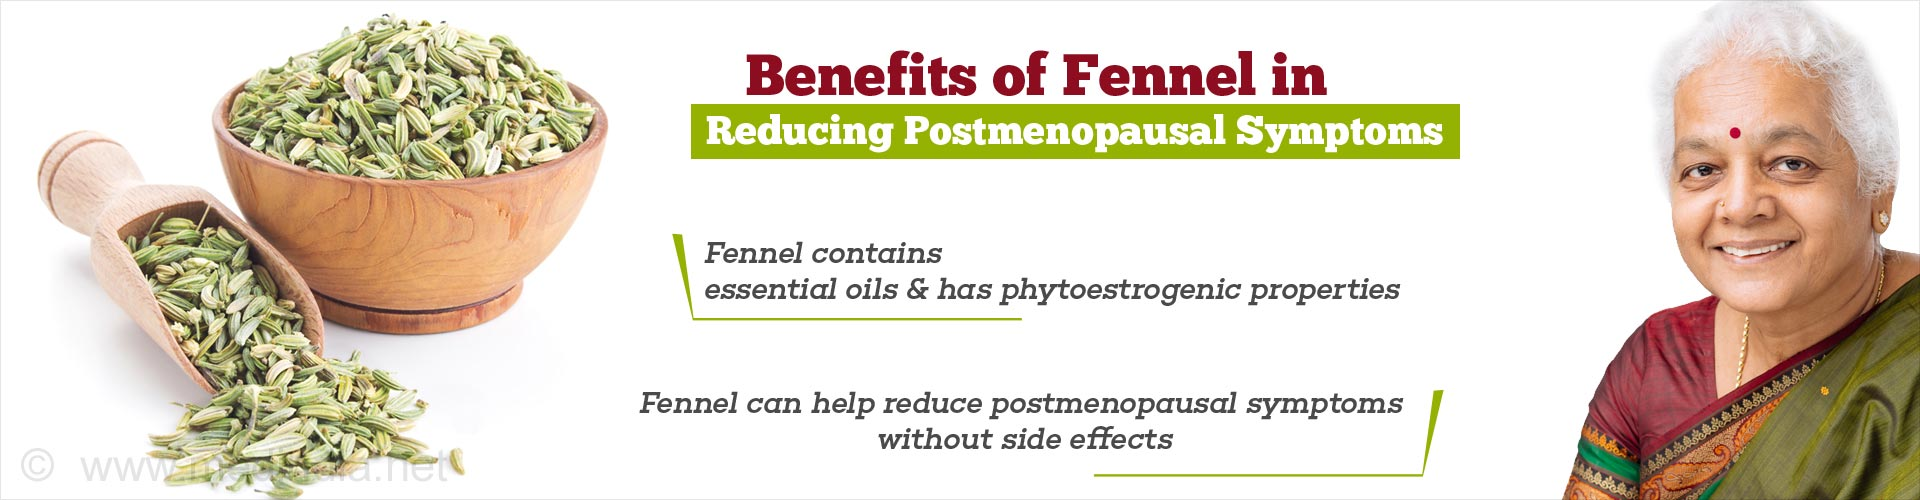 Benefits of Fennel in Reducing Postmenopausal Symptoms